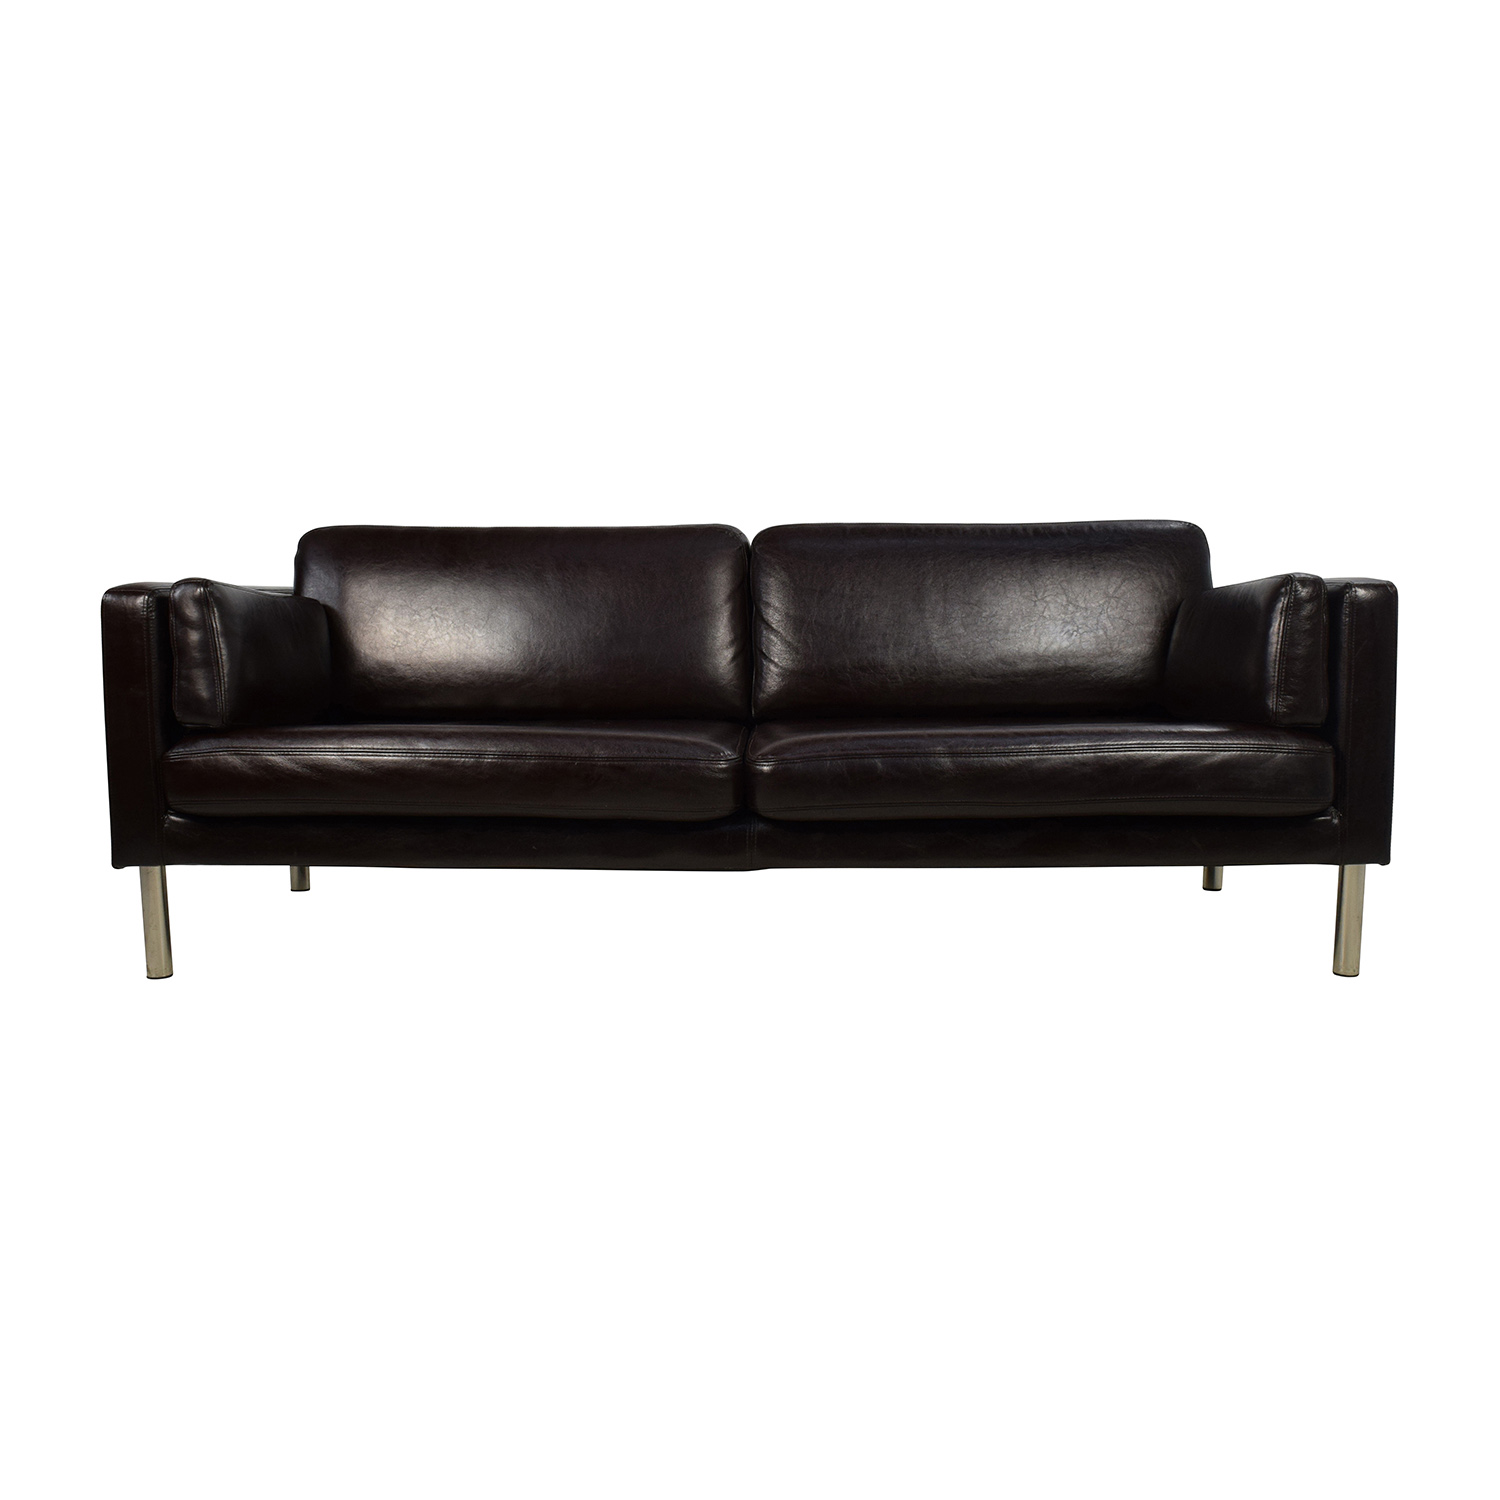 Brown Leather Sofa With Chrome Legs / Sofas ...